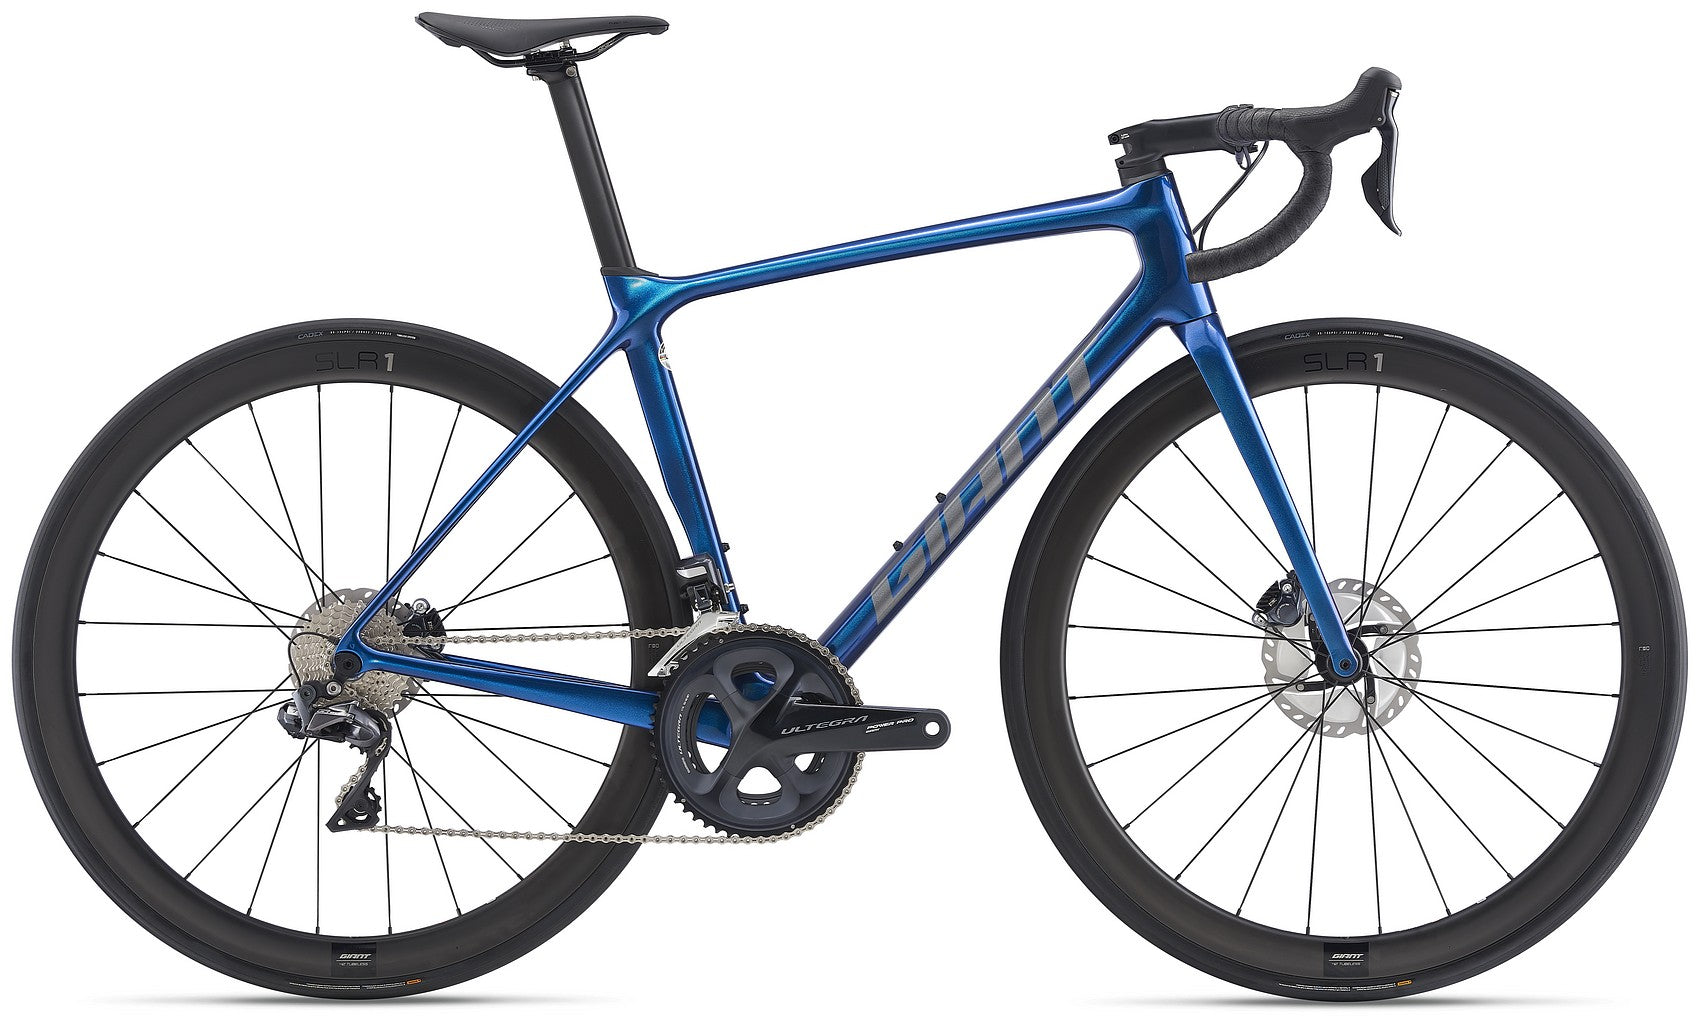 GIANT 2021 TCR ADVANCED PRO DISC